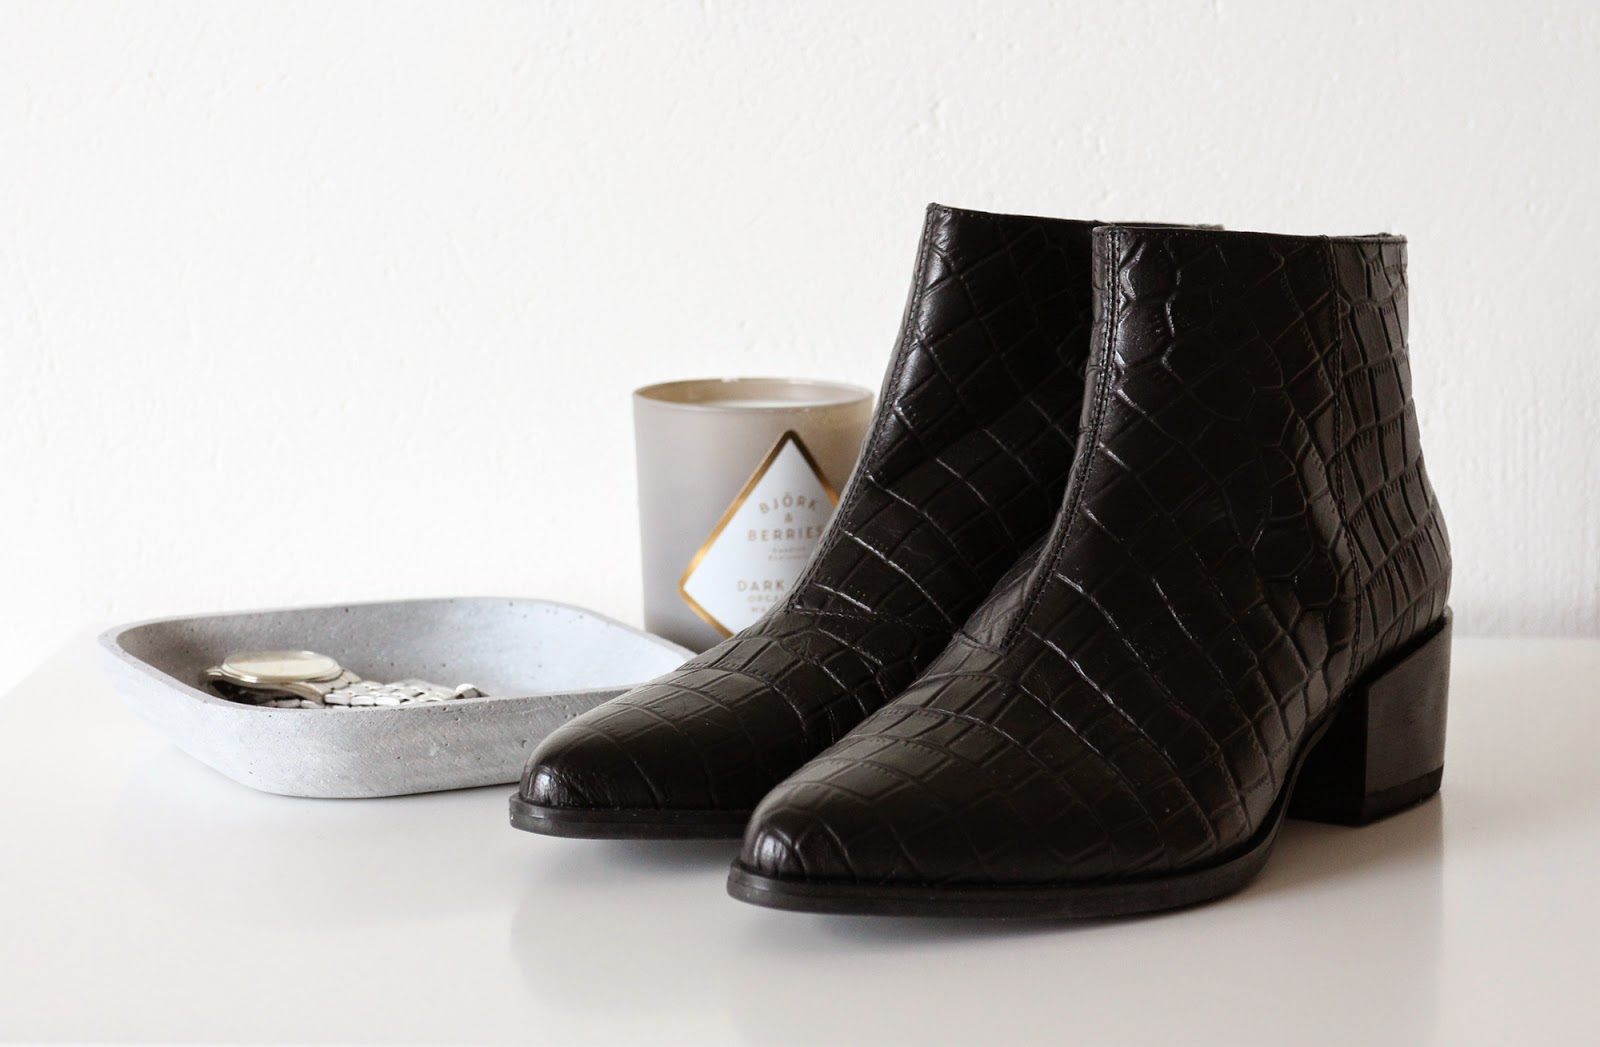 autumn boots from vagabond shoes